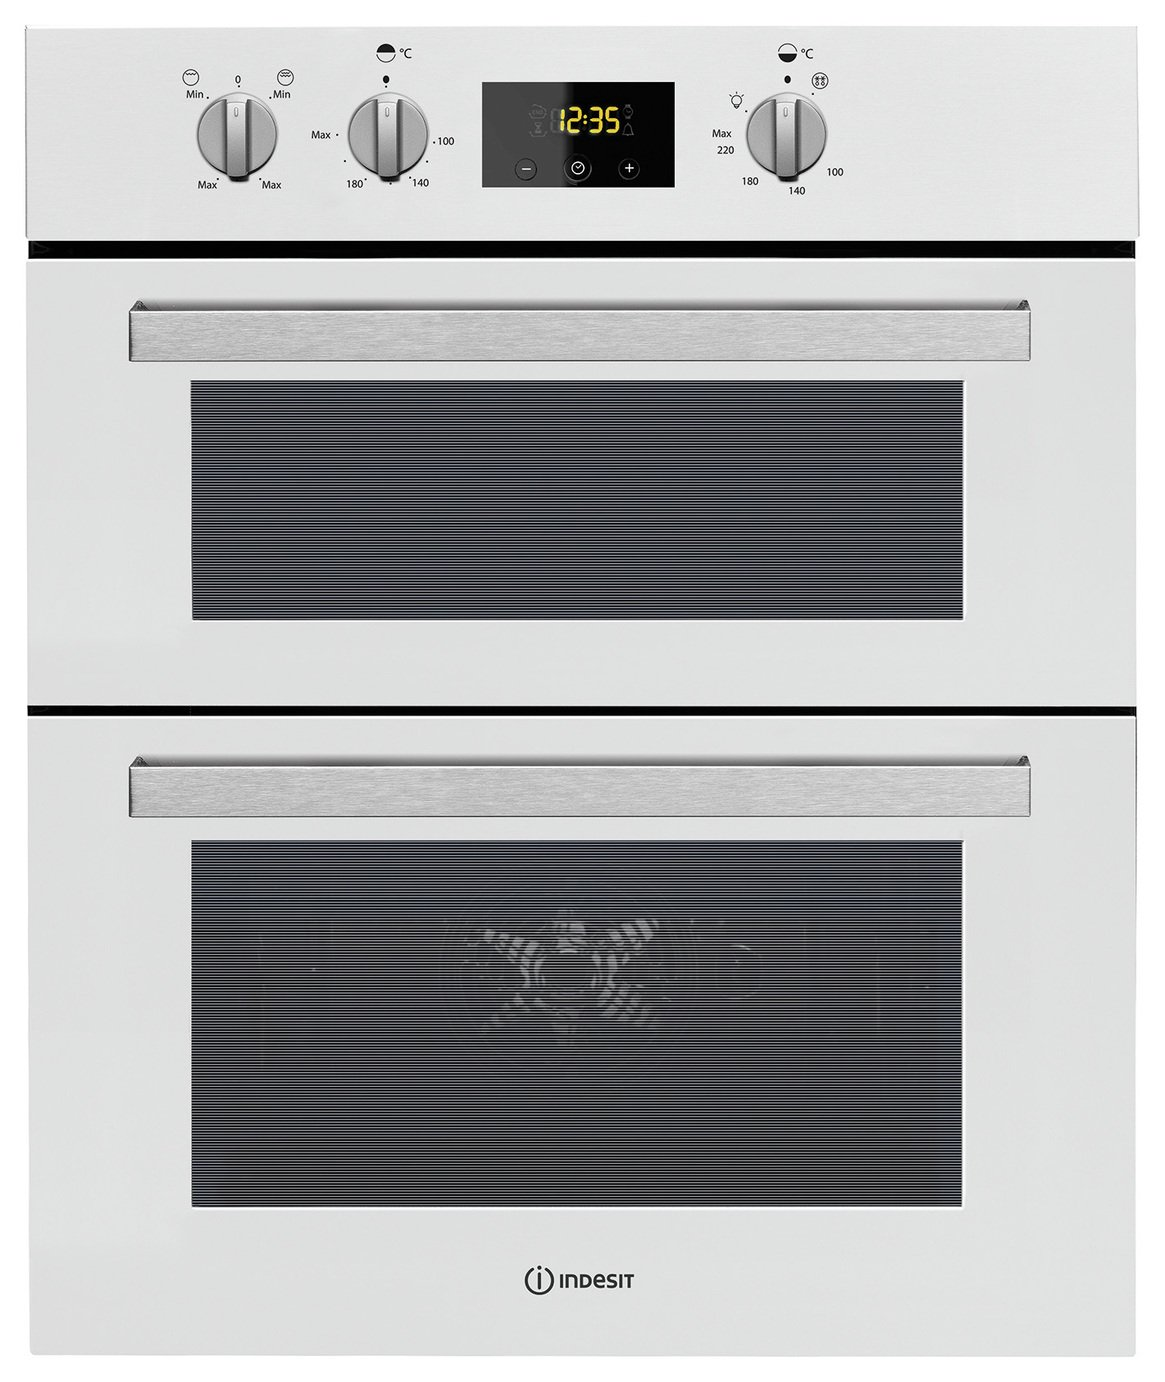 Indesit IDD6340 Built In Double Electric Oven - White